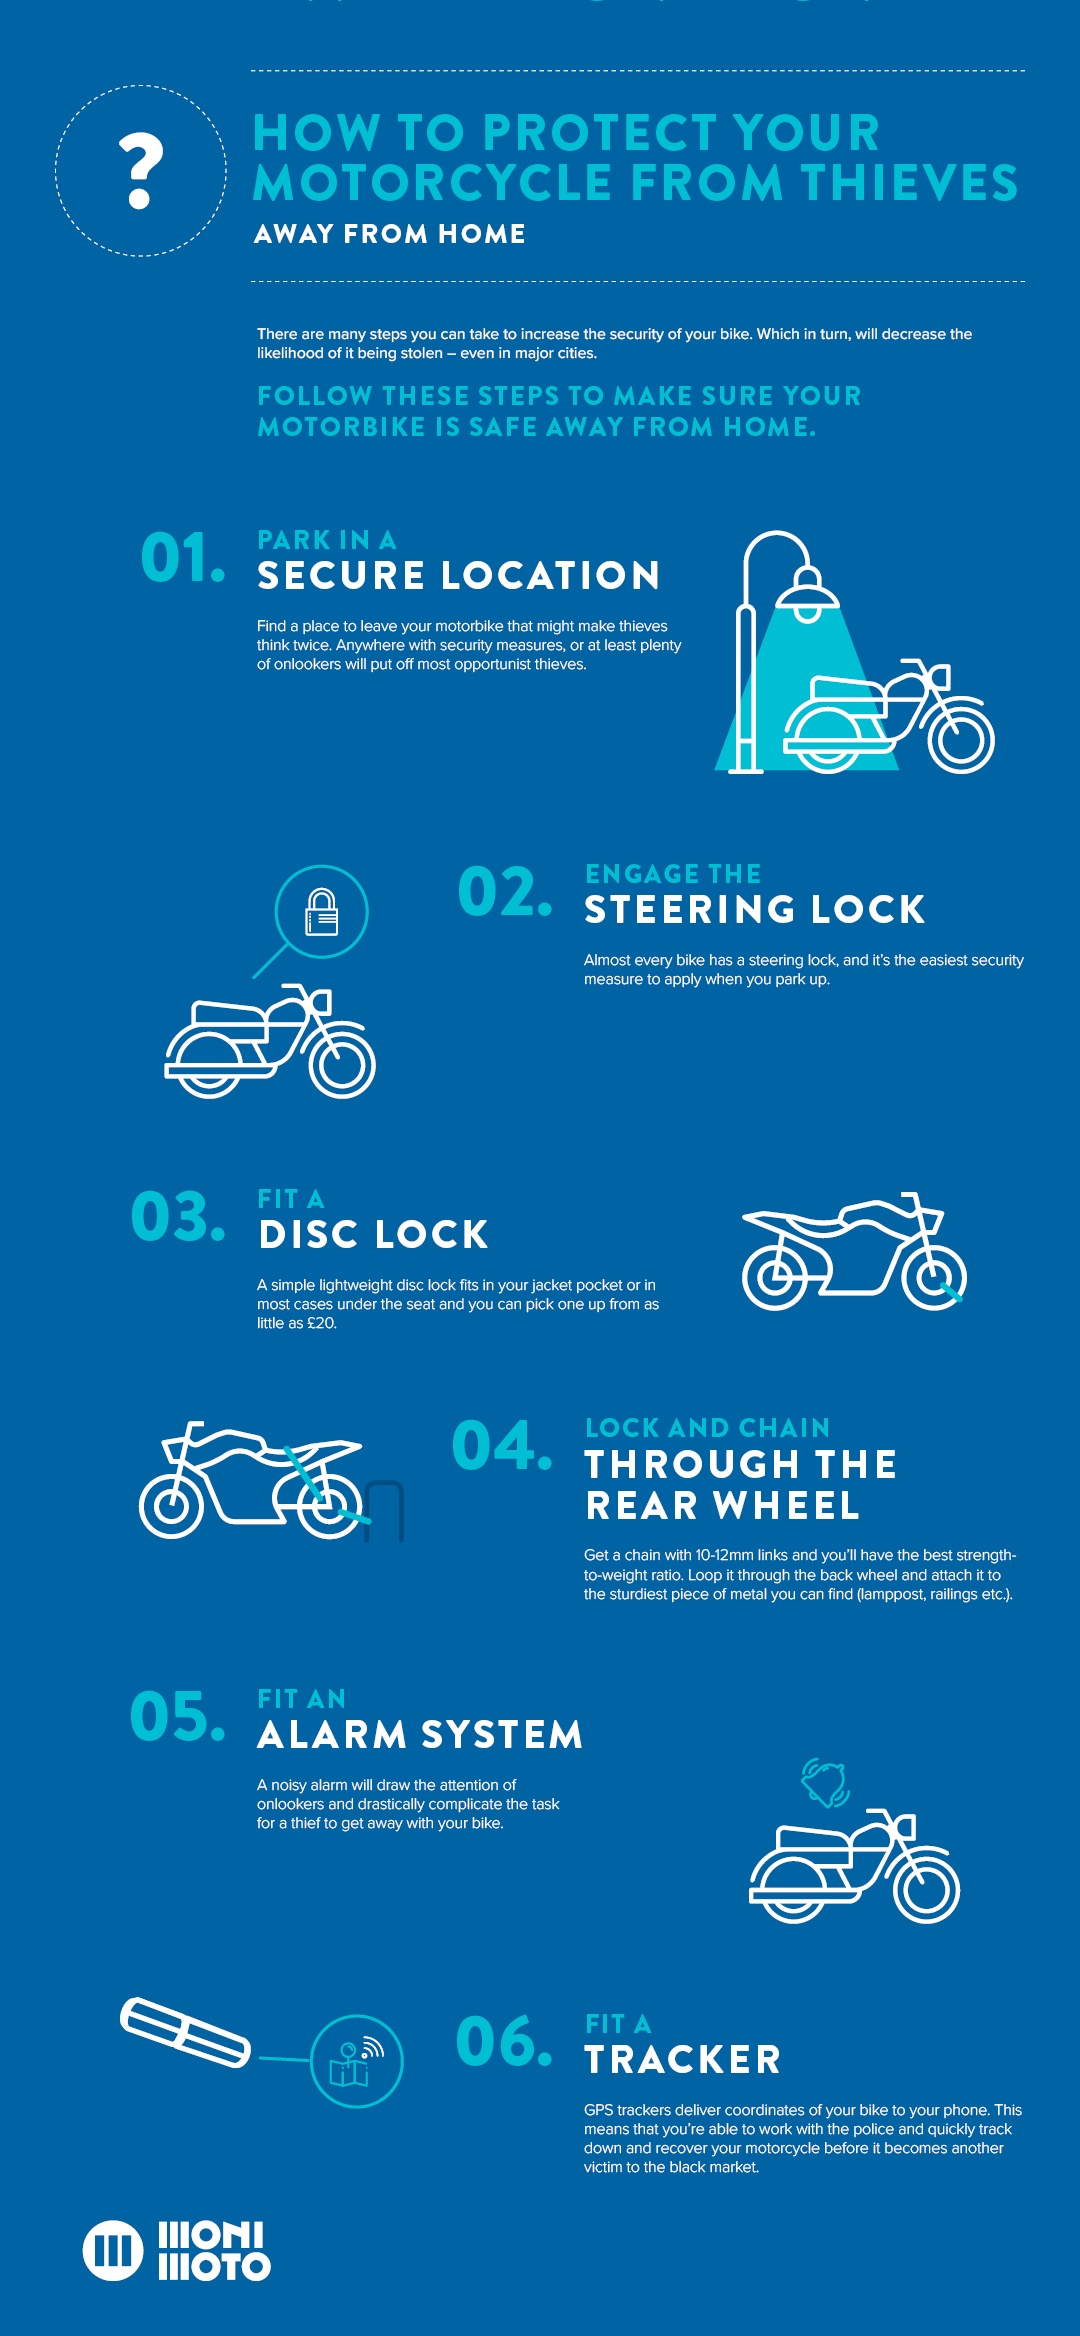 6 security tips that will help you protect you motorcycle from thieves